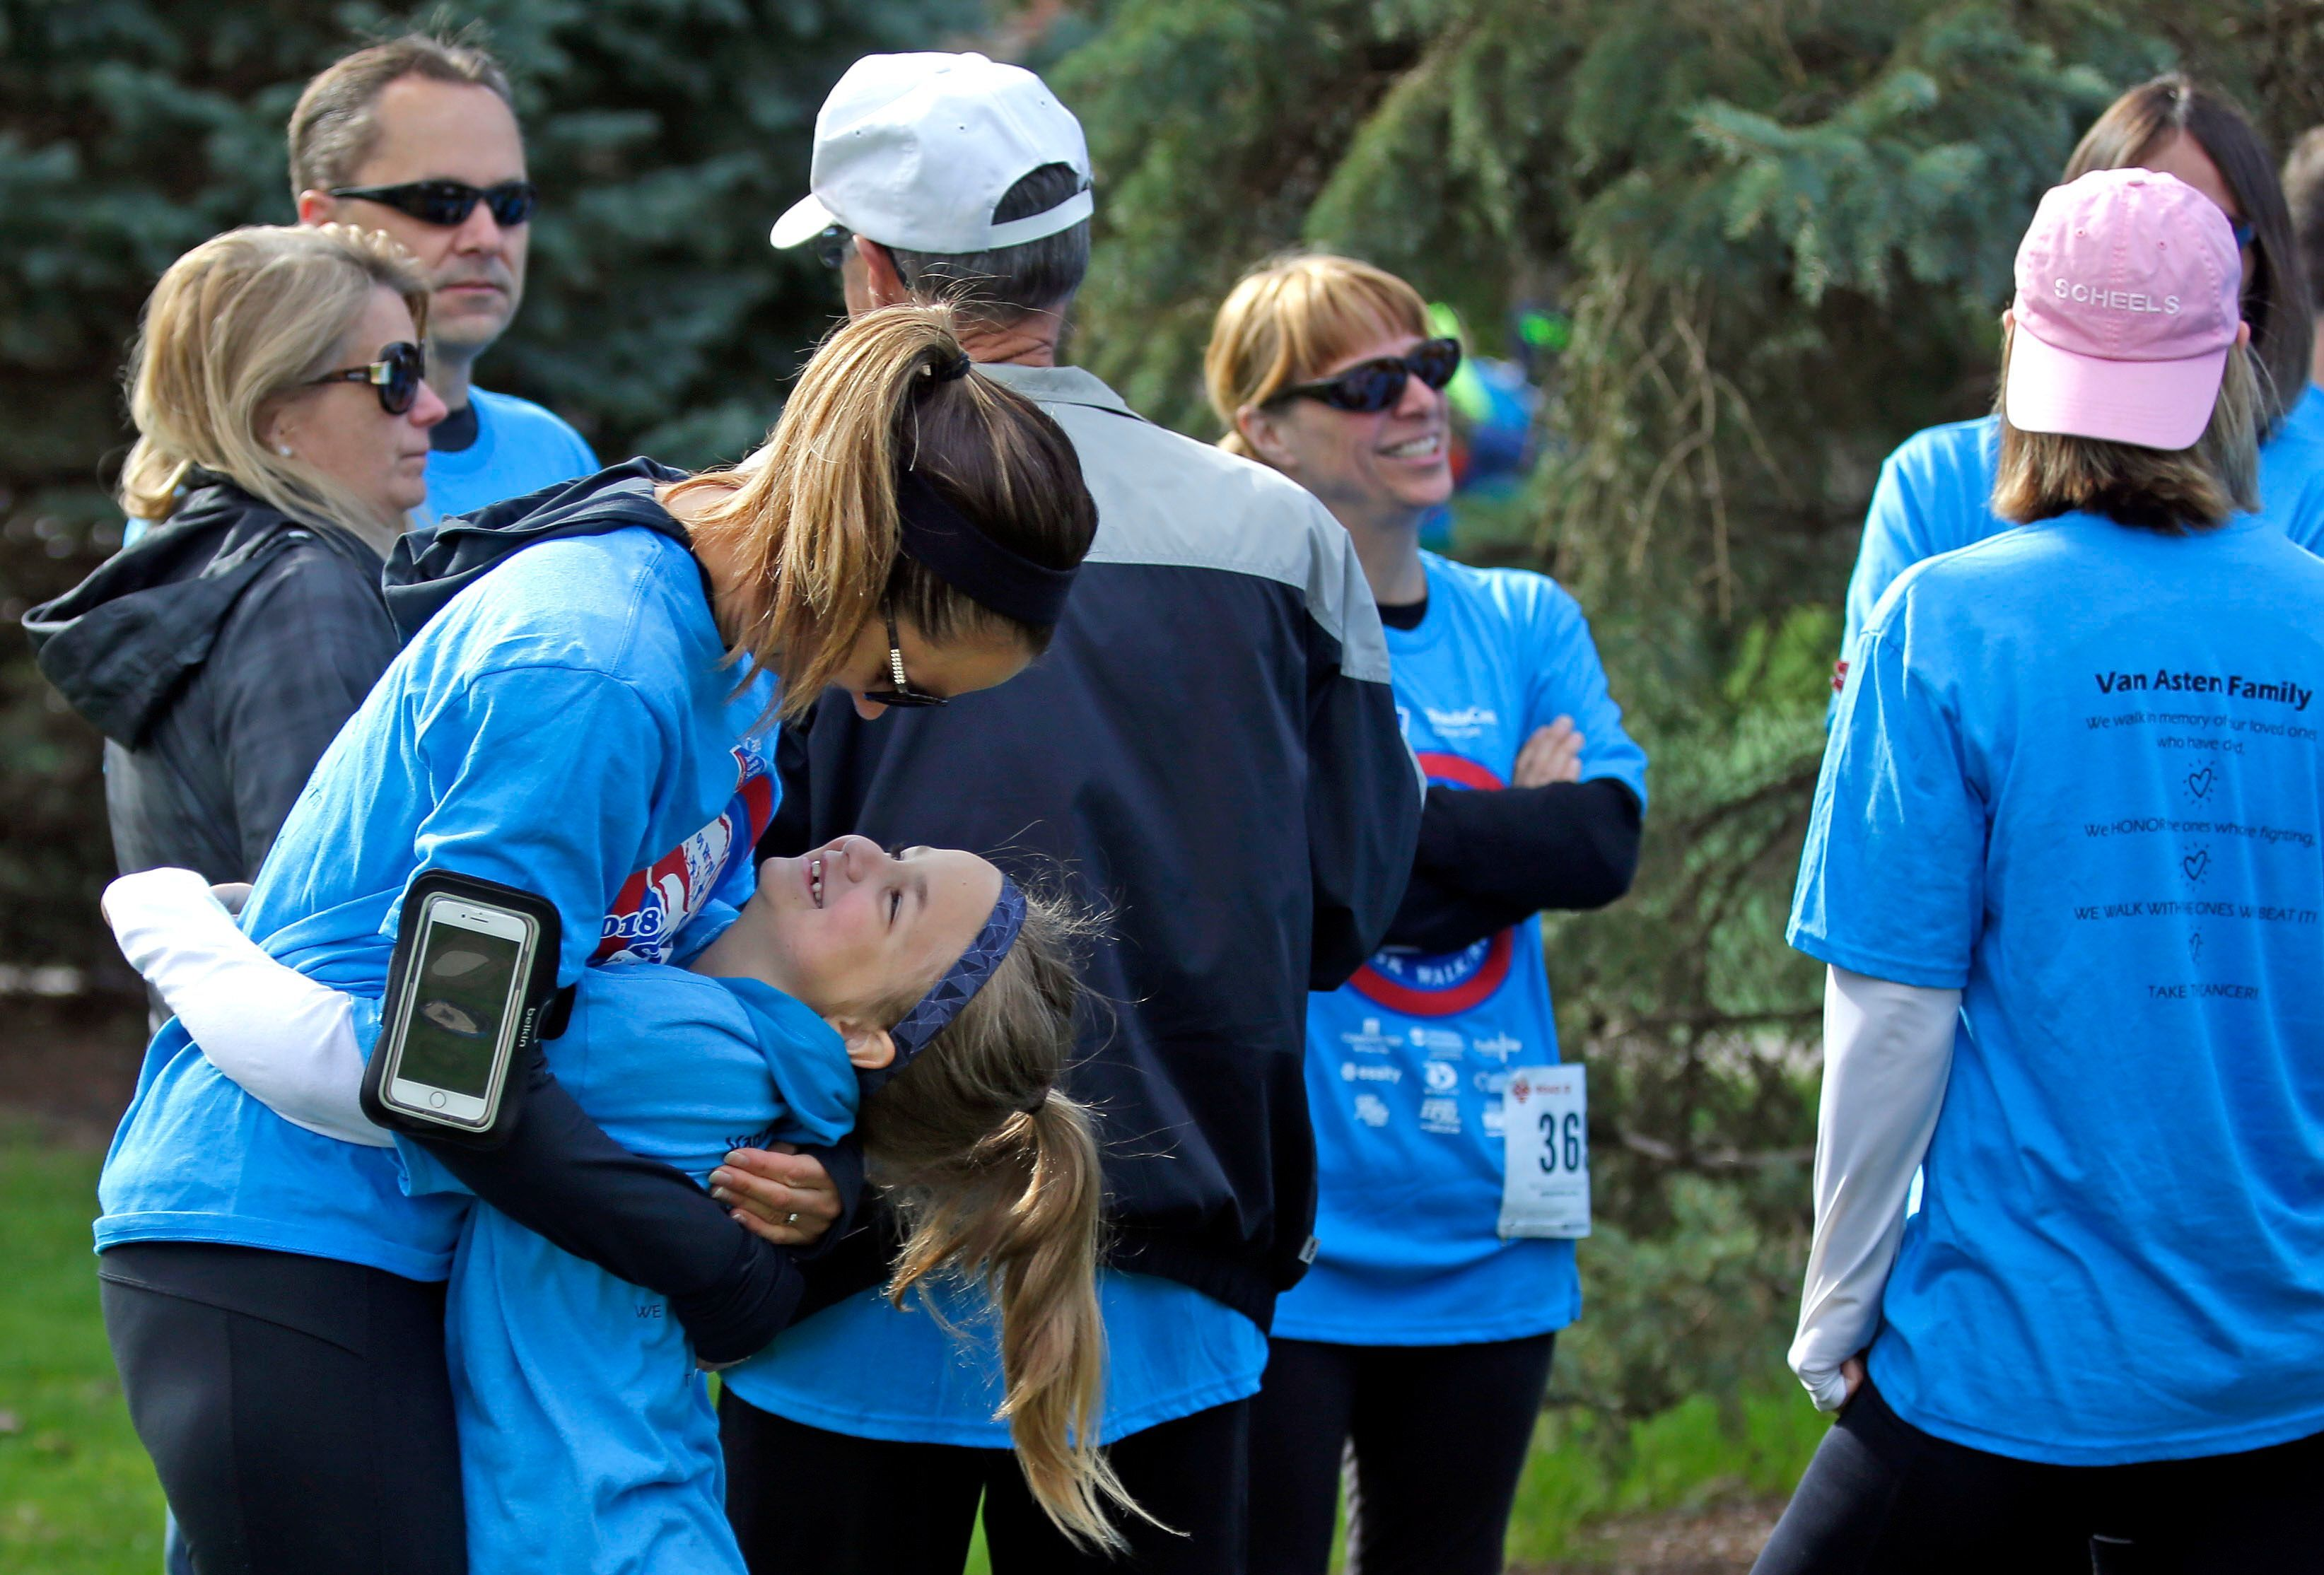 Karen Dietzler gets a hug from her daughter, Chloe, before the 2018 Sole Burner Run/Walk at City Park in Appleton.